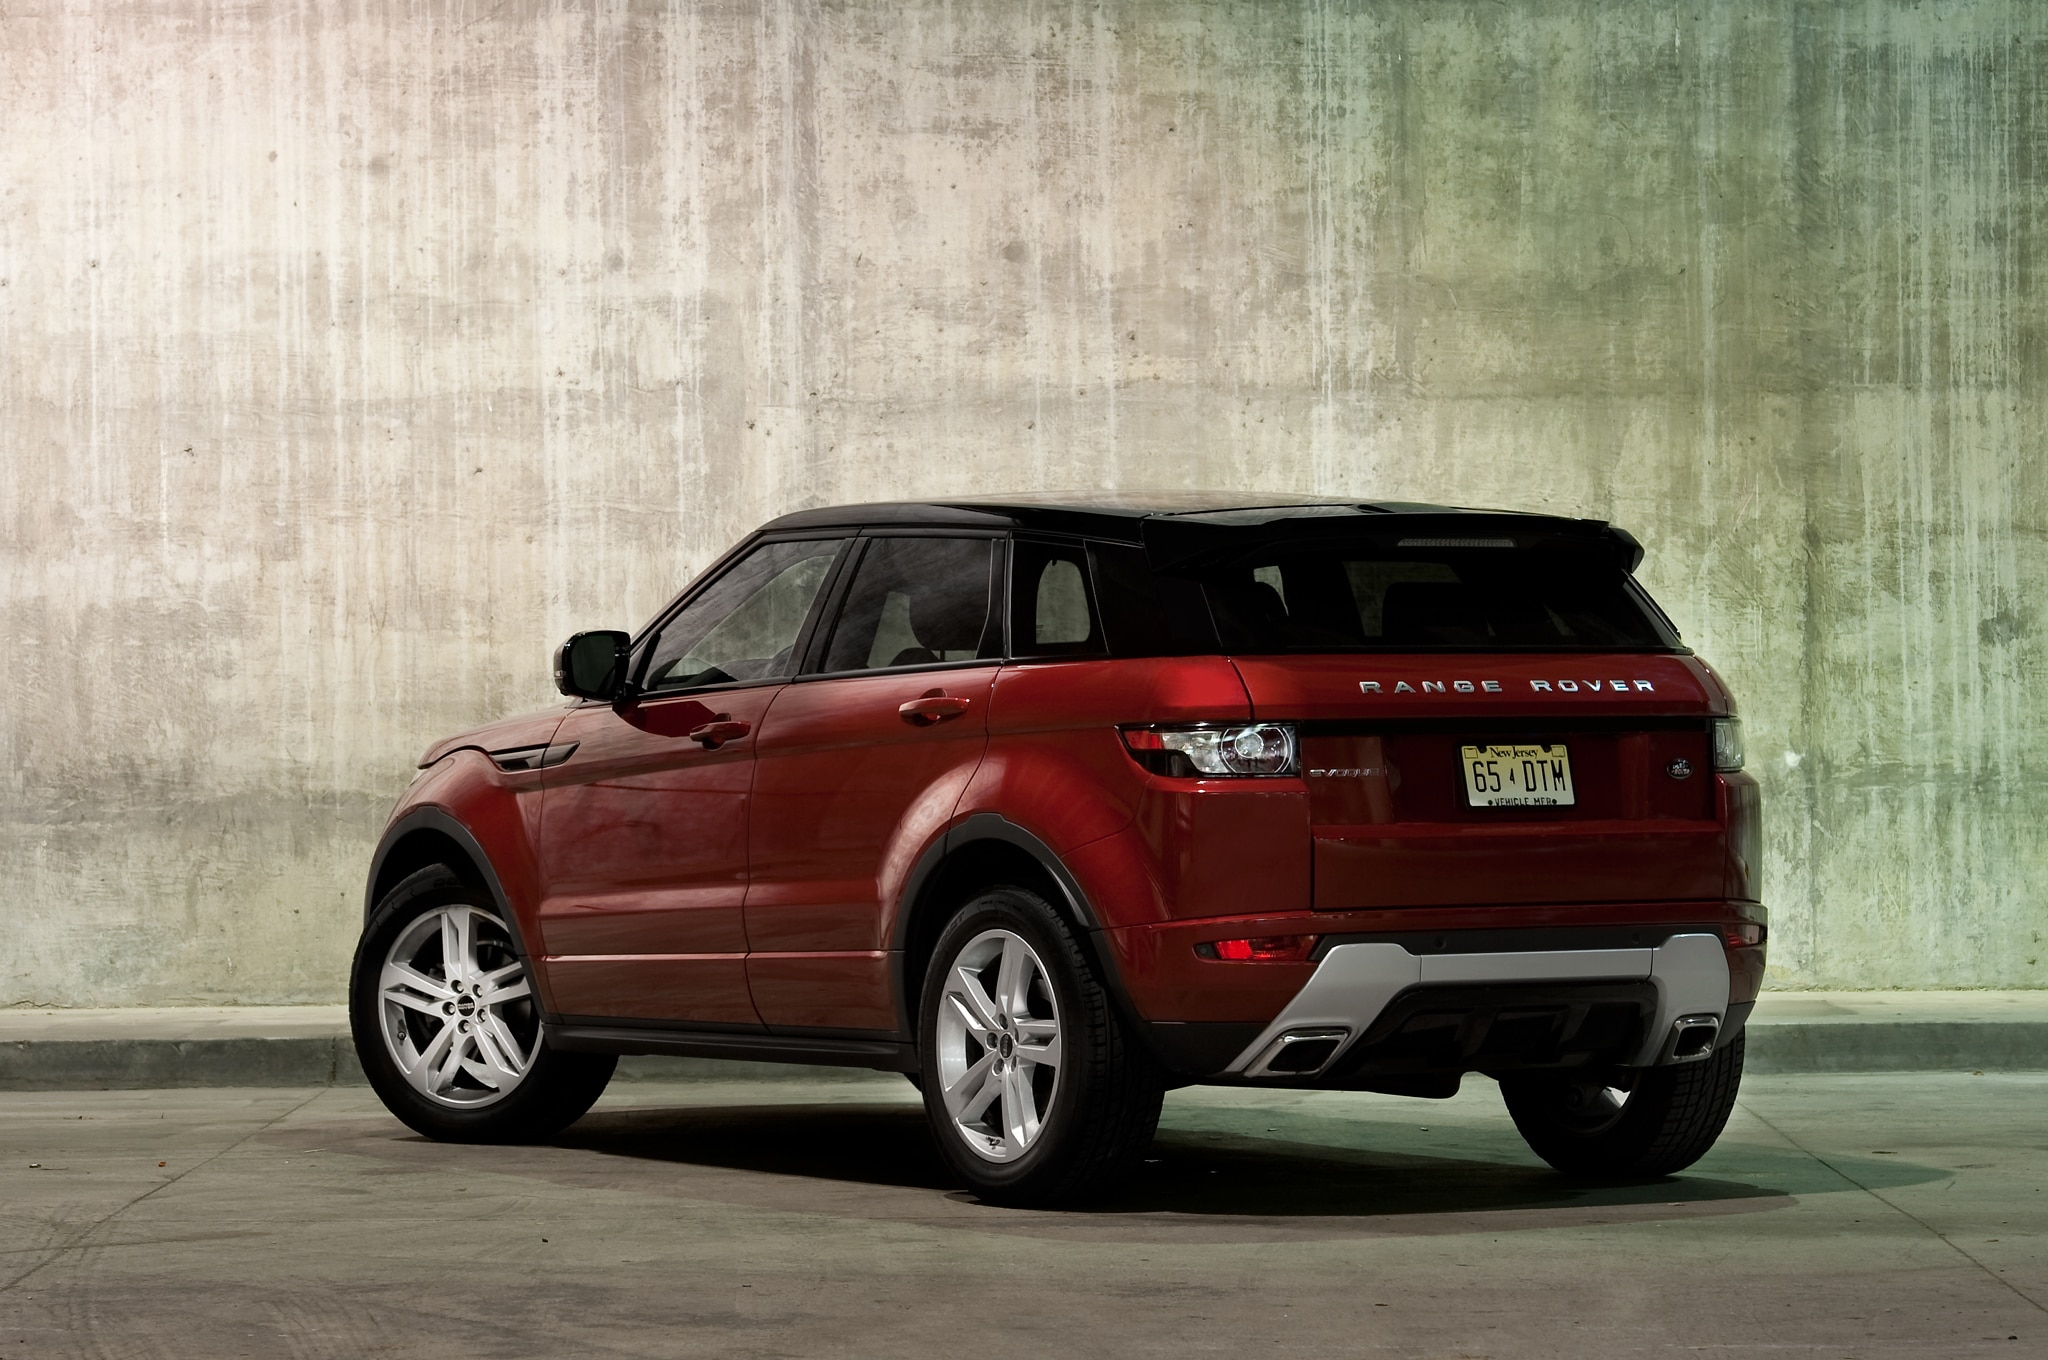 2012 Land Rover Range Rover Evoque Rear Three Quarters